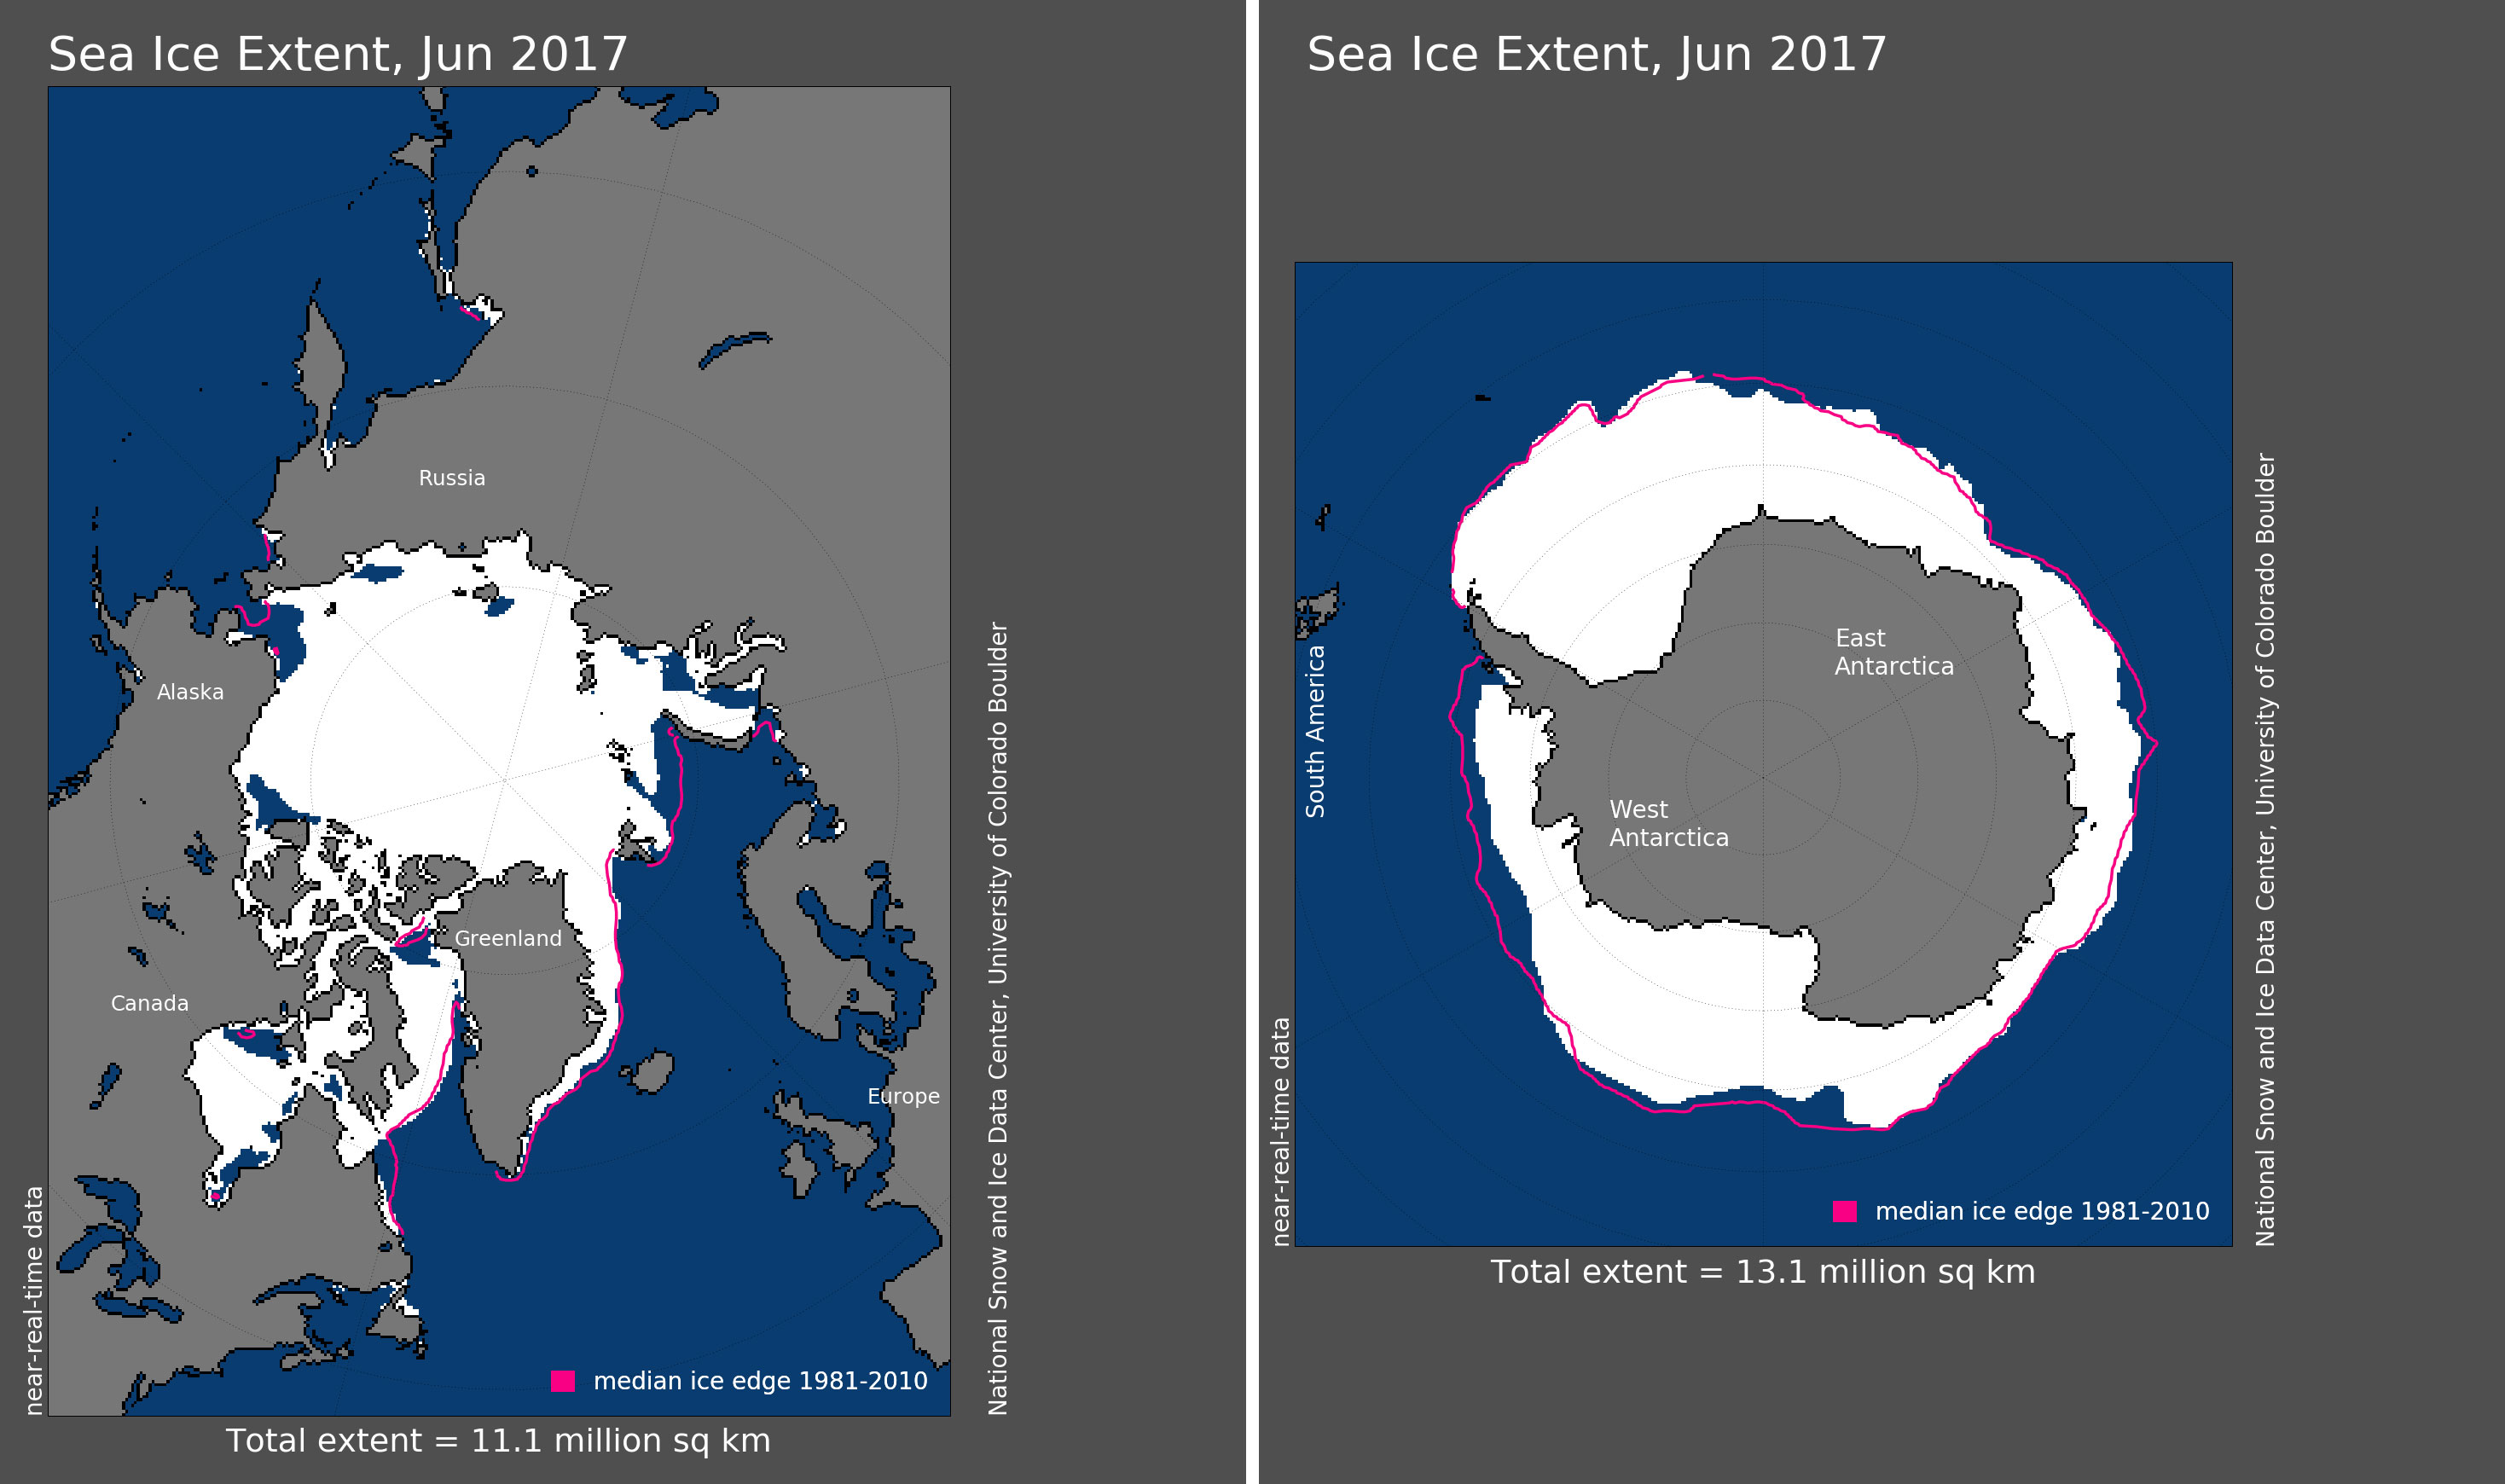 Maps of Arctic and Antarctic sea ice extent in June 2017